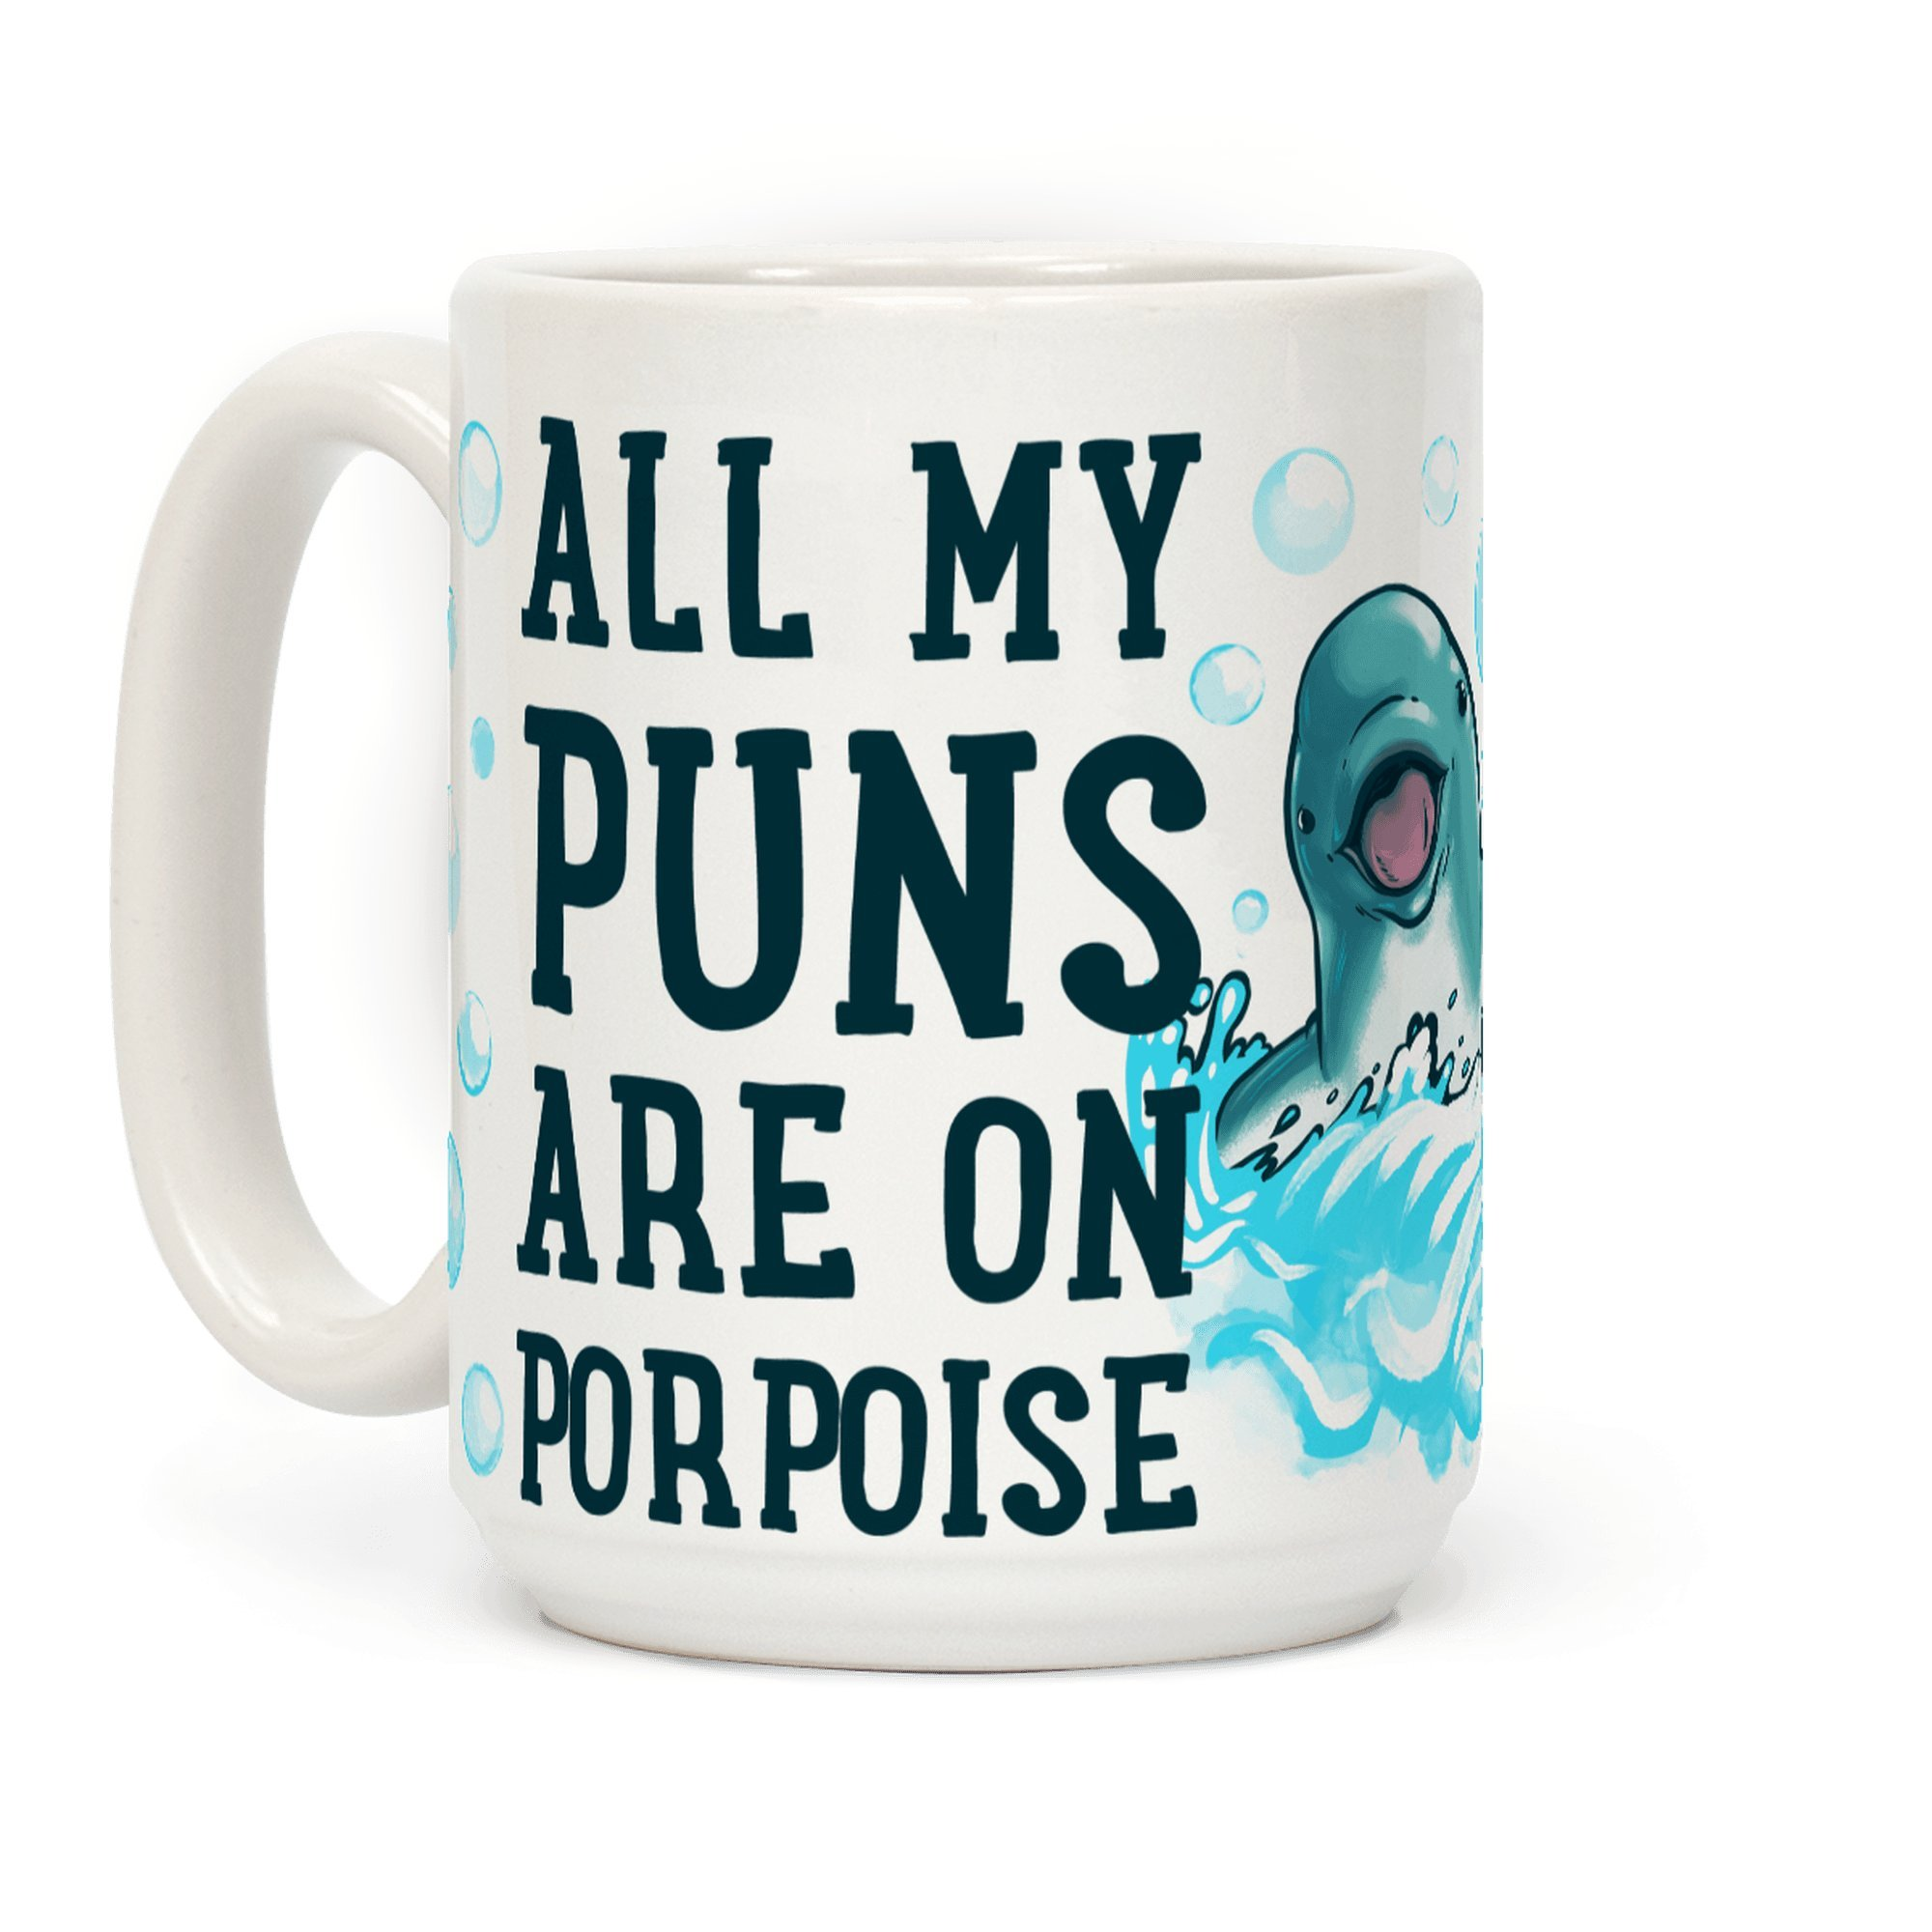 All My Puns are On Porpoise 15 OZ Coffee Mug by LookHUMAN